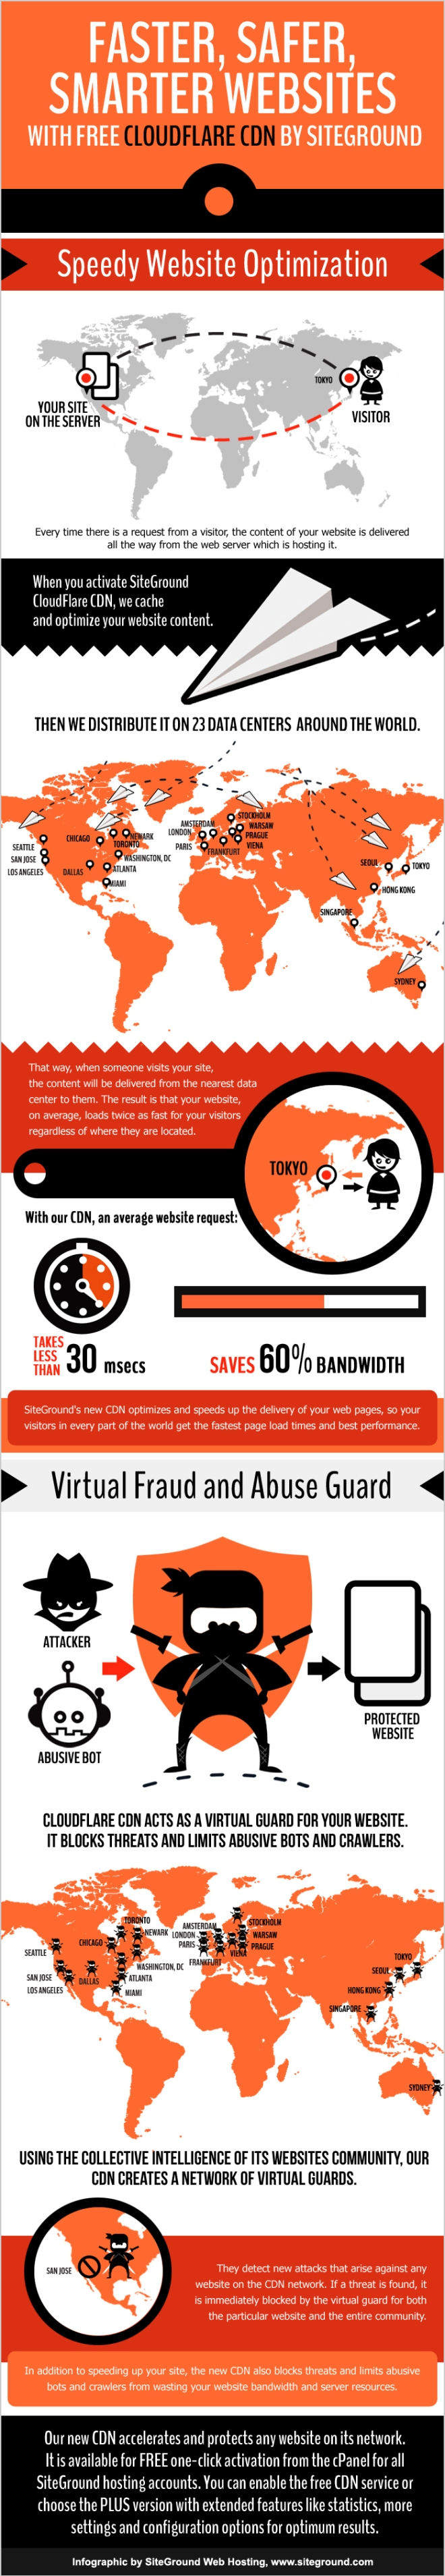 Faster, Safer, Smarter Websites Infographic